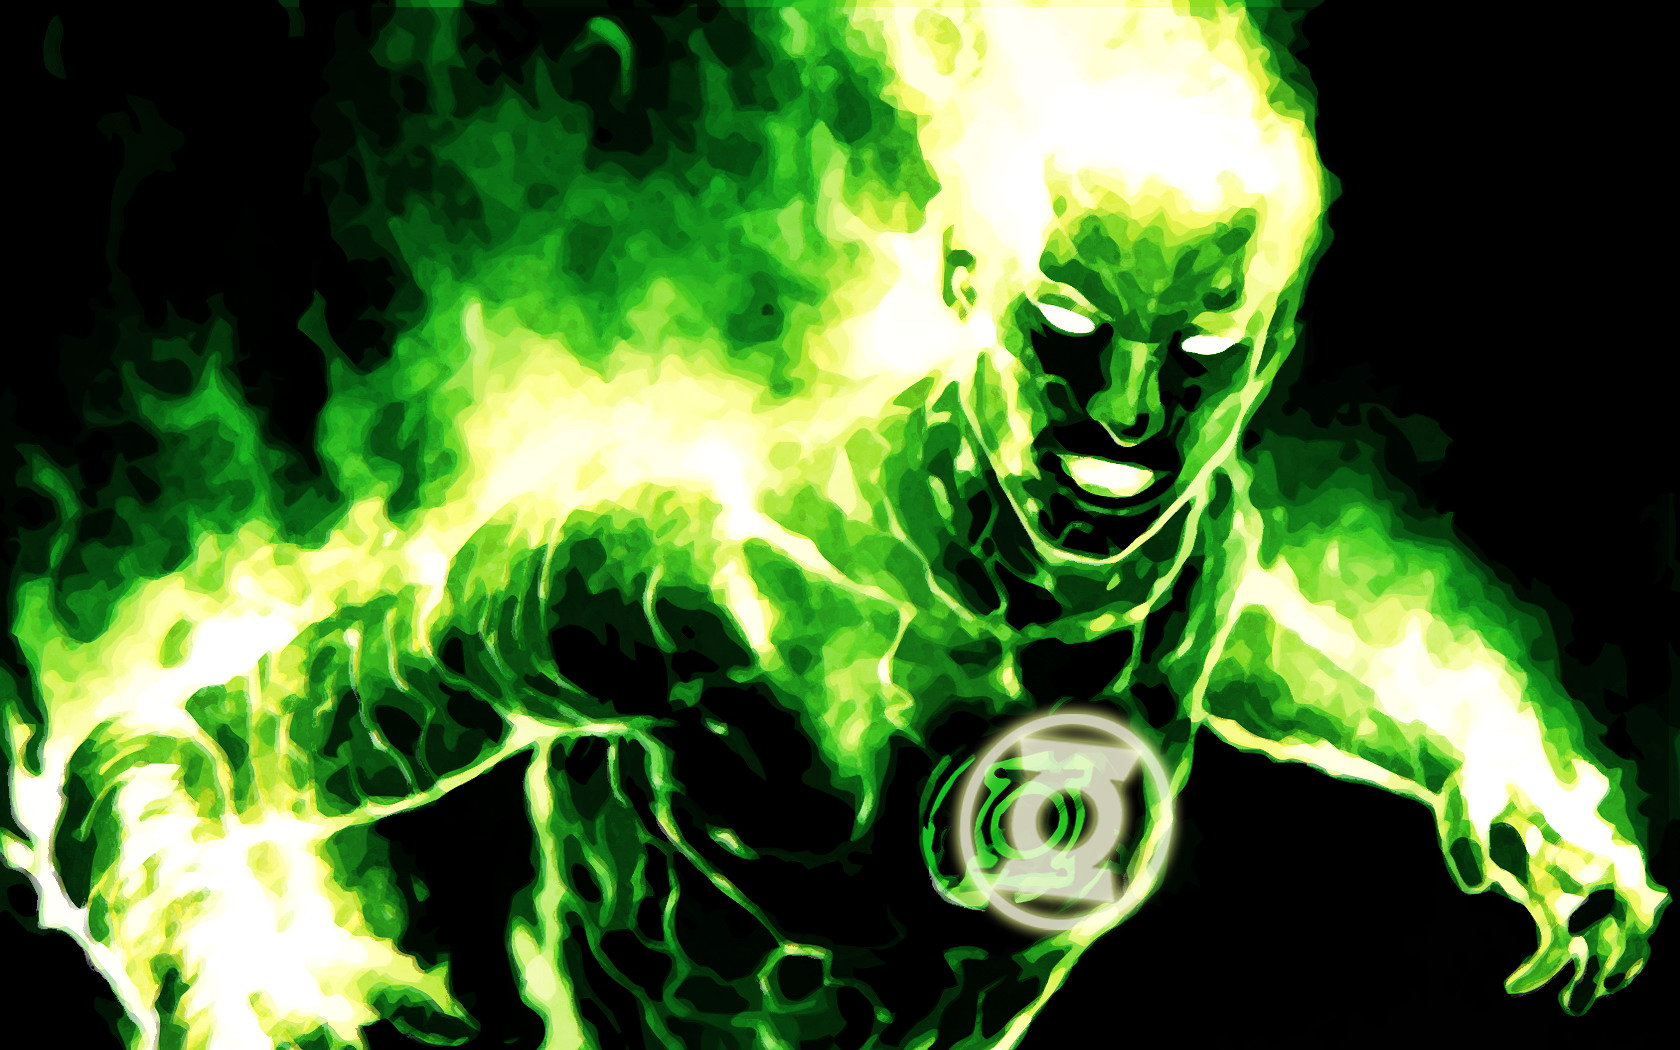 Download Green Lantern Wallpaper 1680x1050 Wallpoper 362836 1680x1050